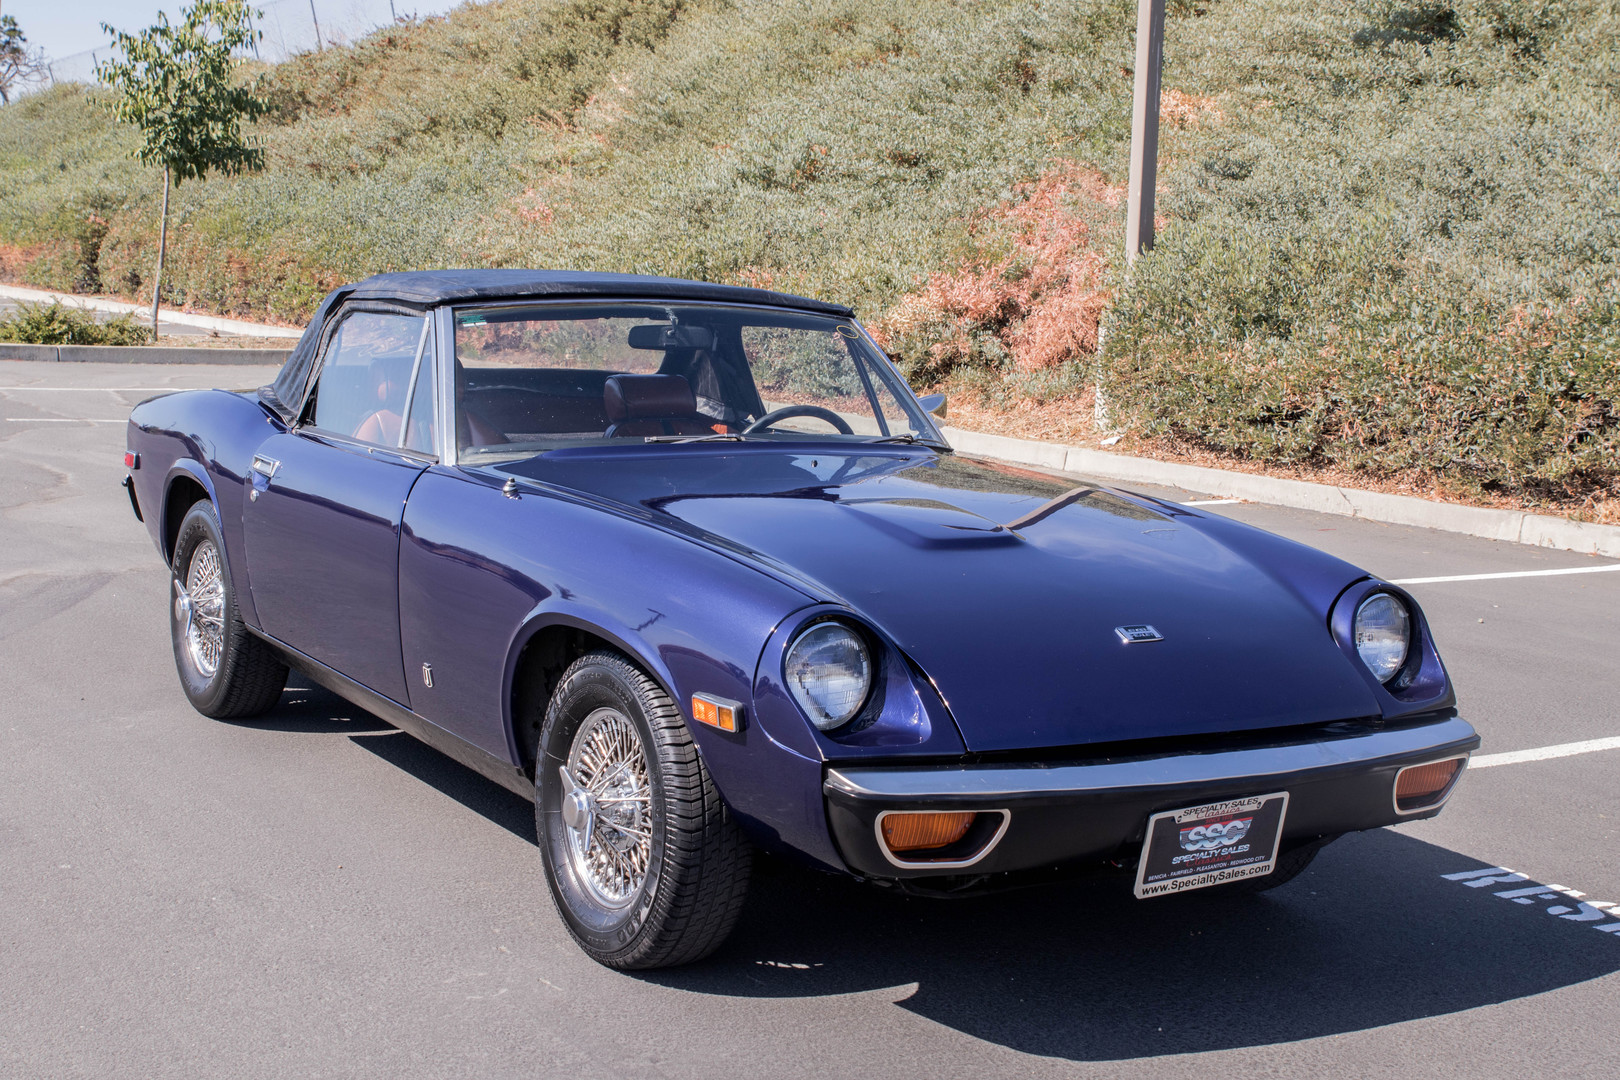 hight resolution of interceptor factory s repair manuals 1973 74 jensen healey wheel alignment guide drivers handbook revered selling my ubiquitous lotus twin cam bad bit